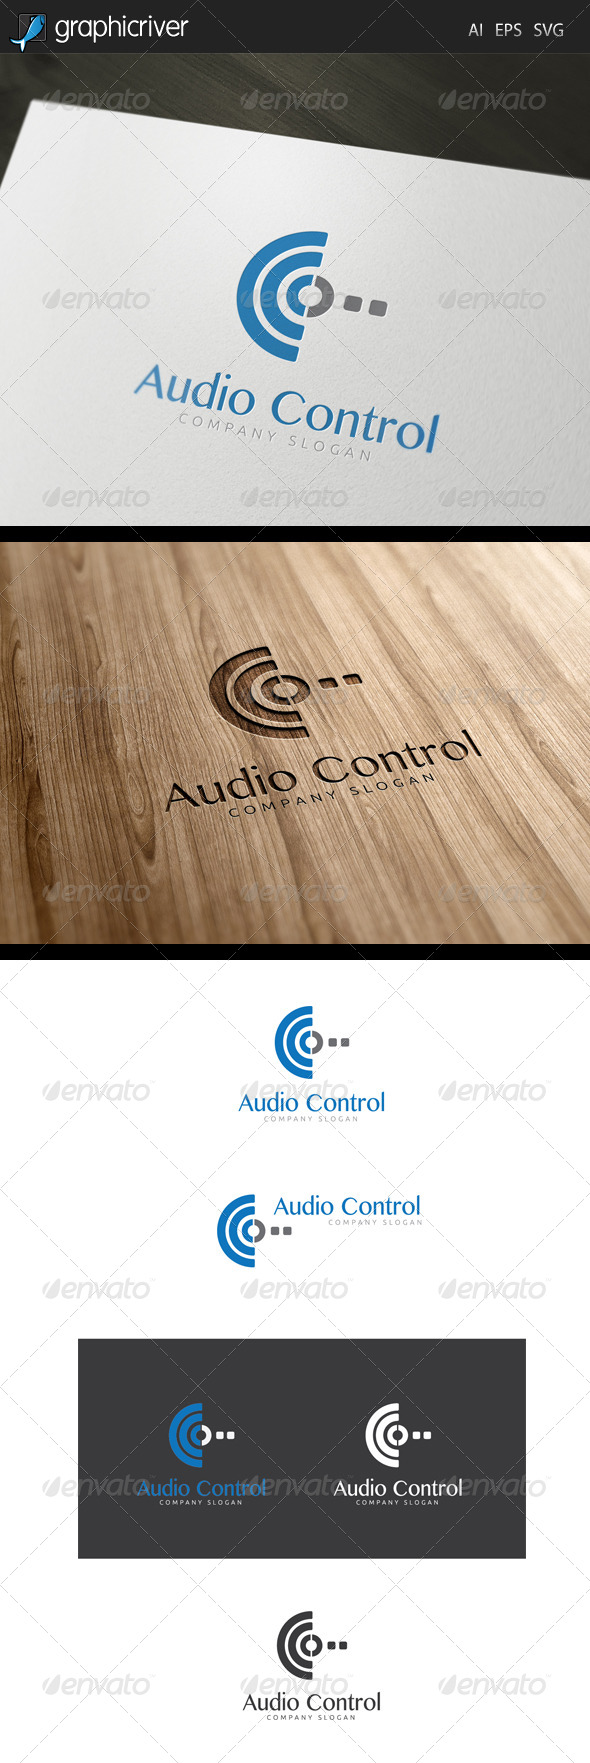 GraphicRiver Audio Control Logo 7450072